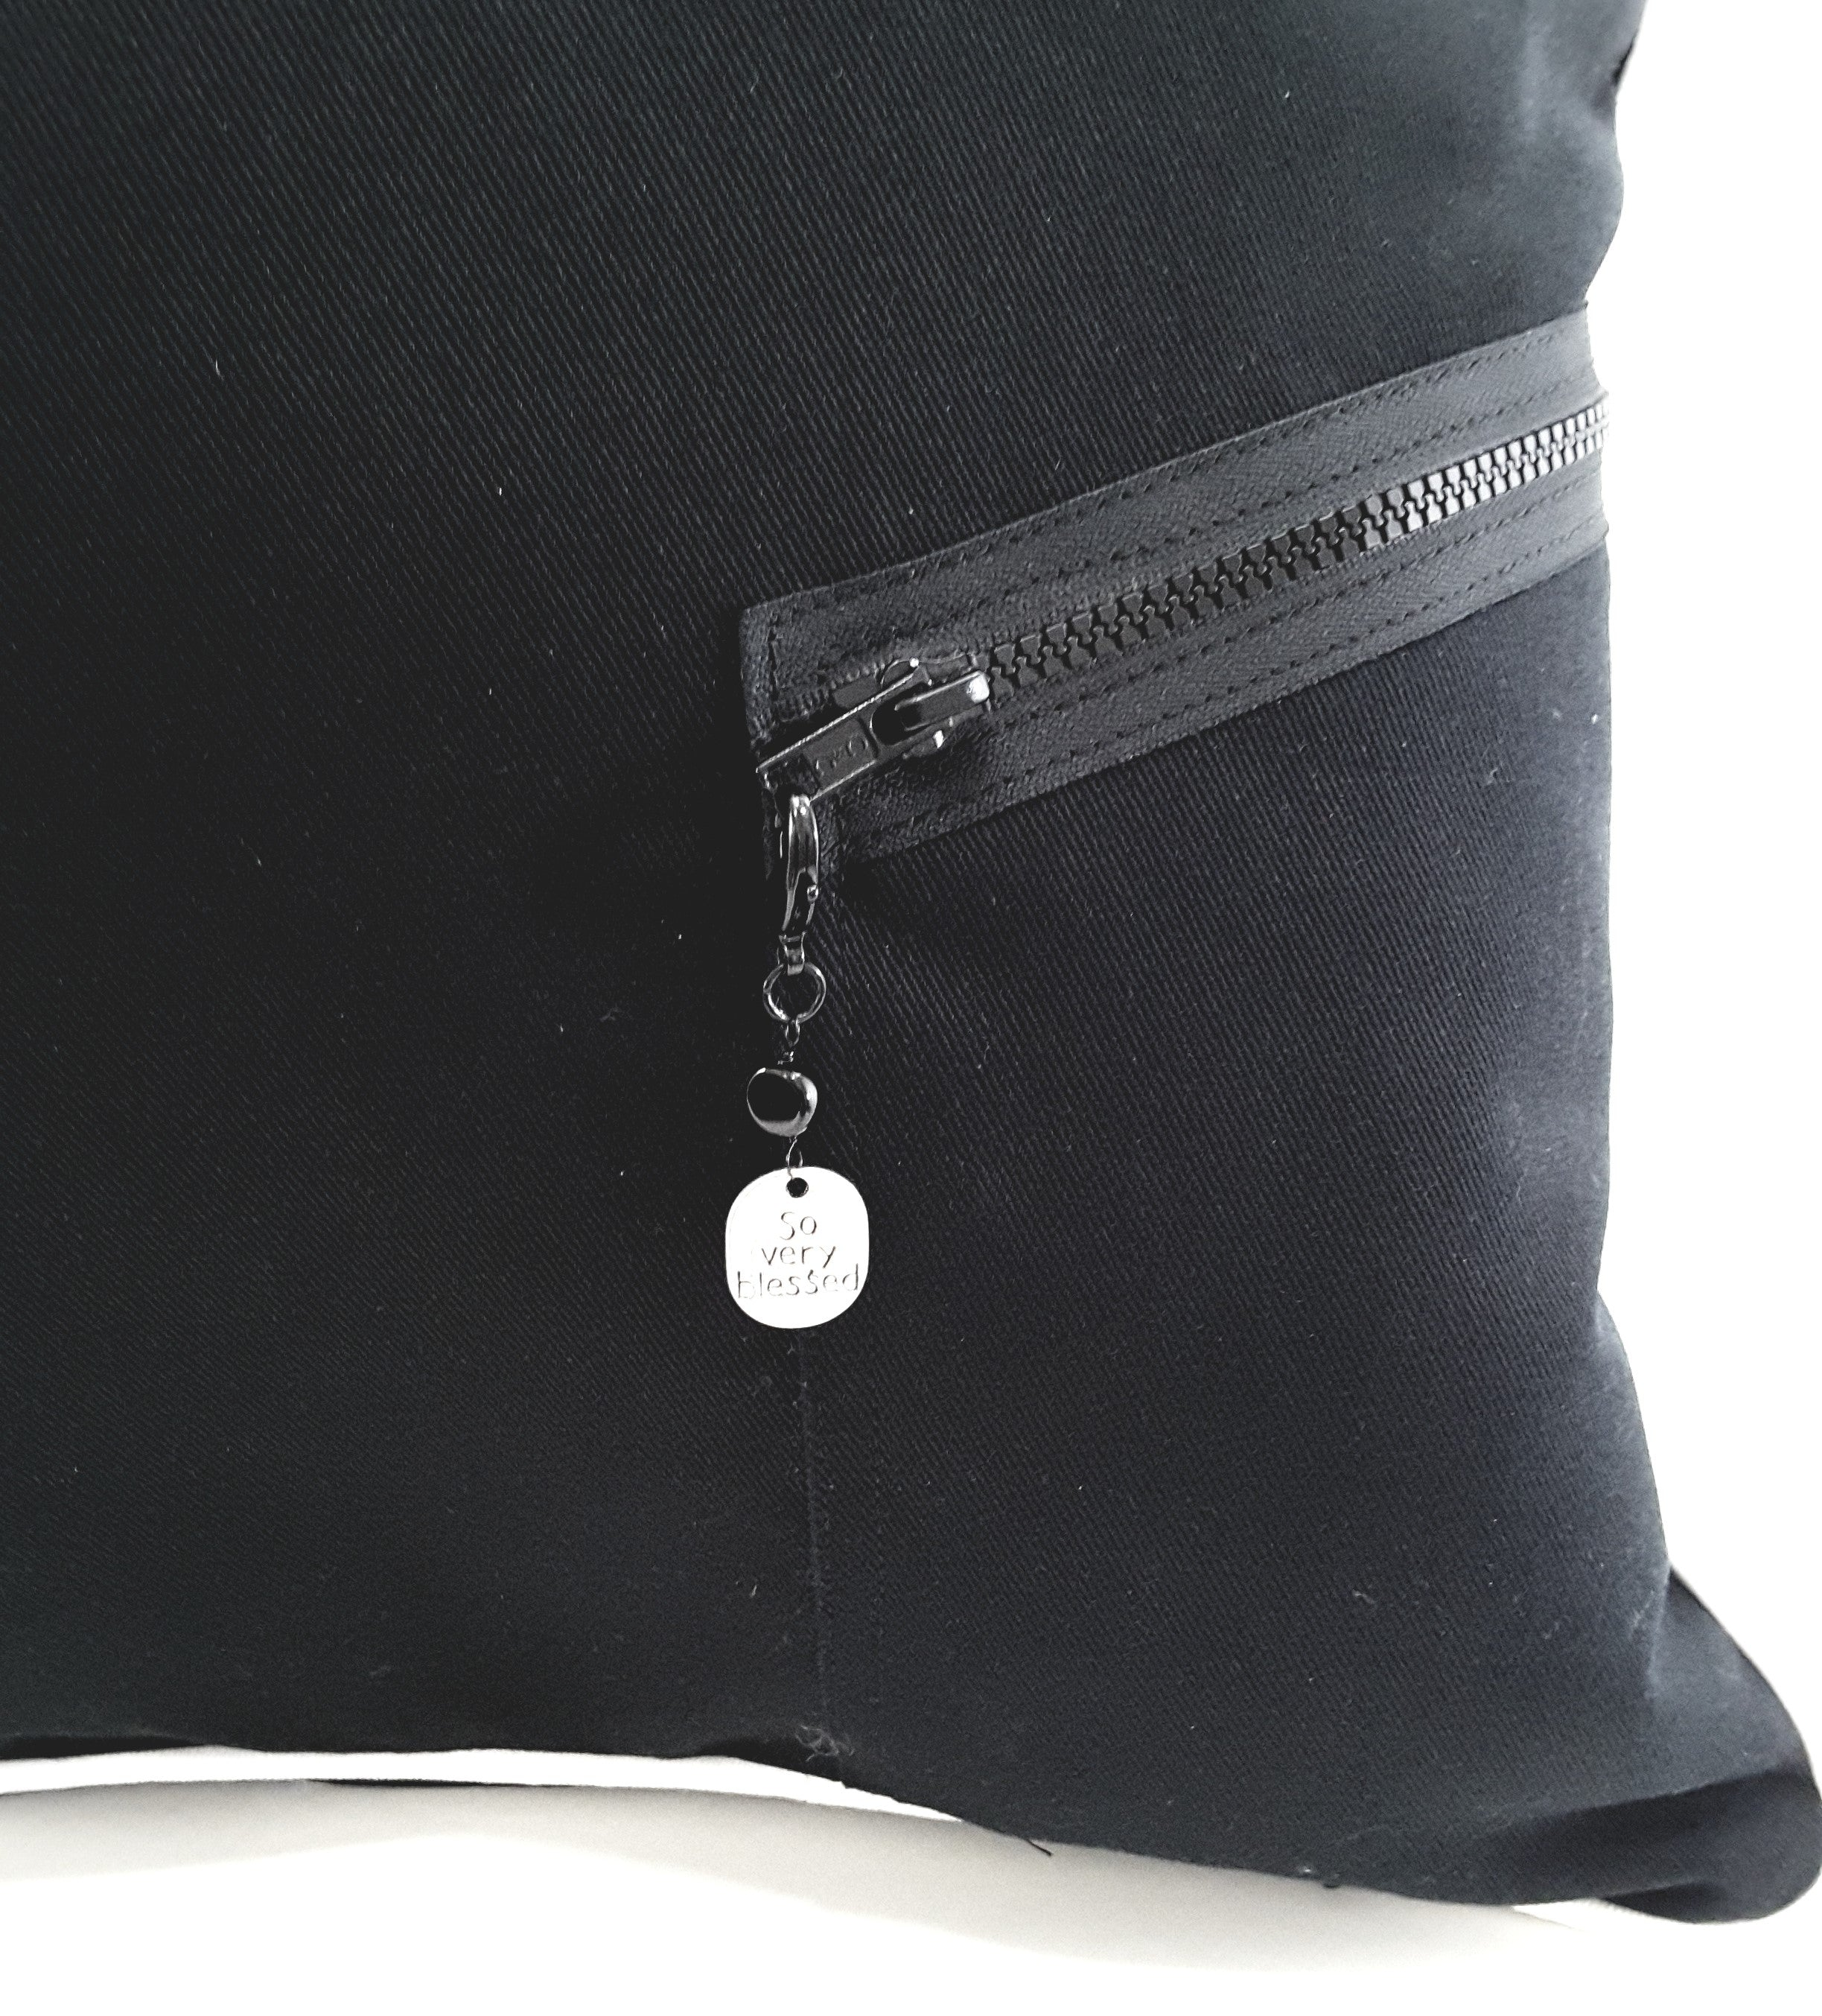 closeup of black zipper with charm on black denim pillow